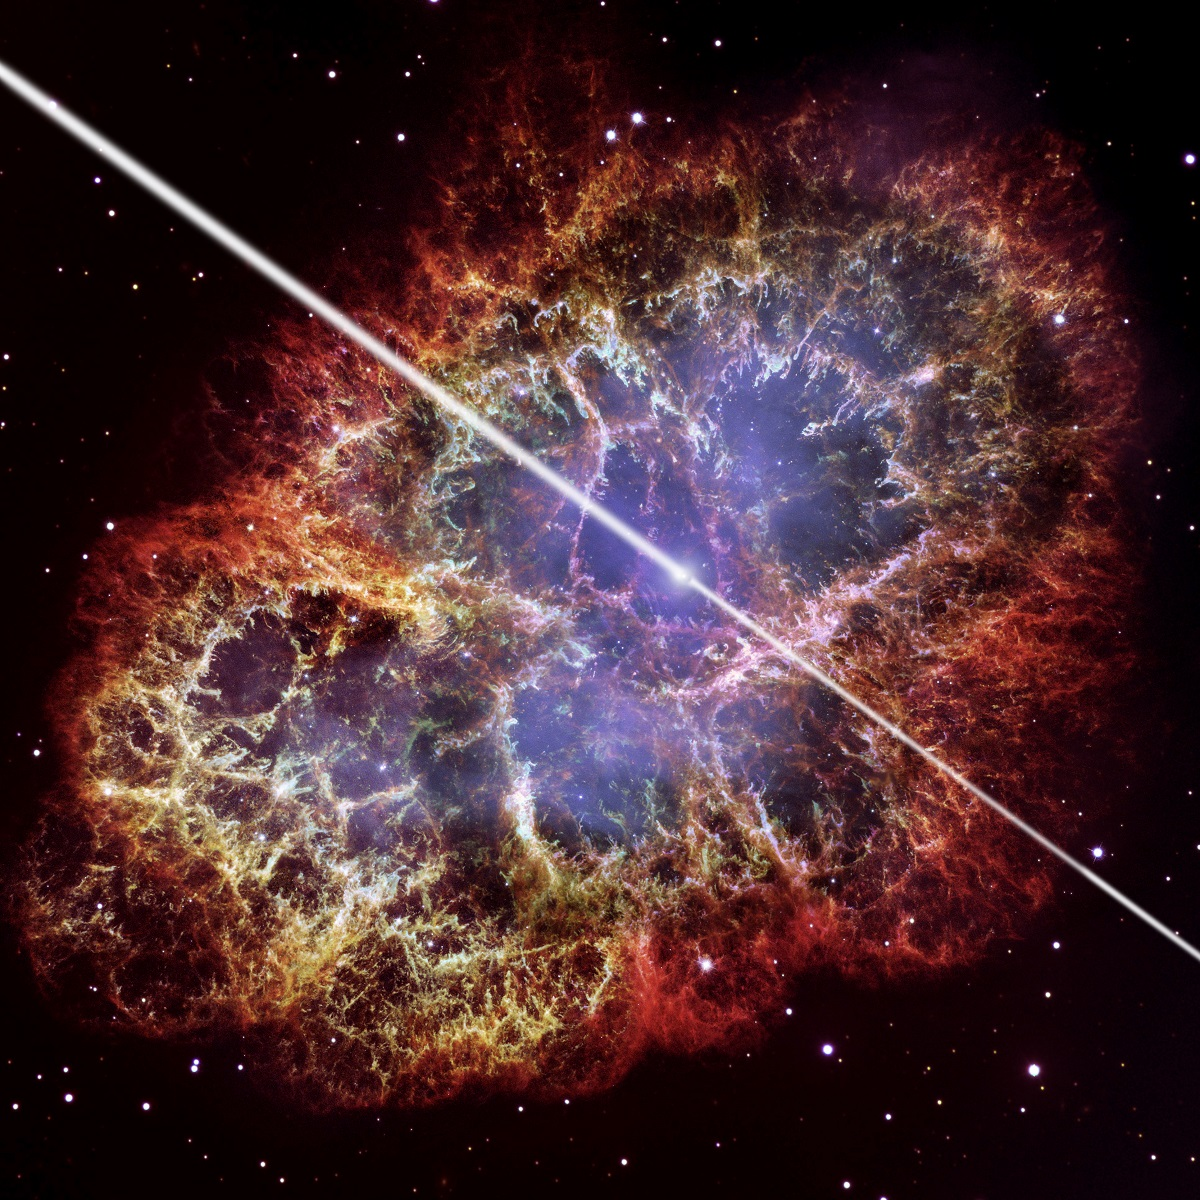 image of a Pulsar that might reveal lost cities of the Cthulhu Mythos